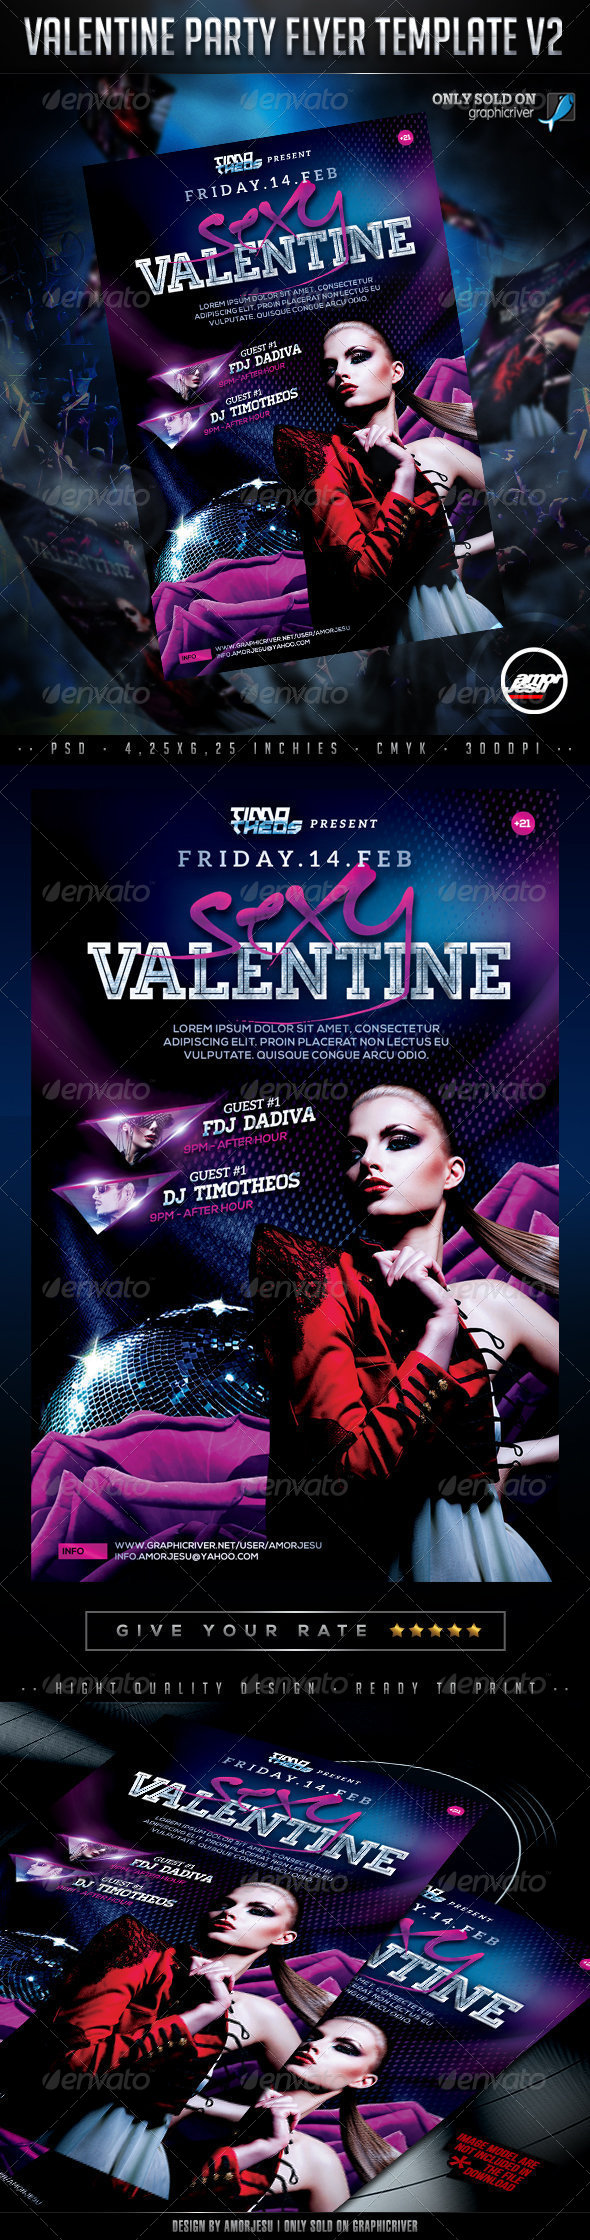 Valentine Party Flyer Template V2